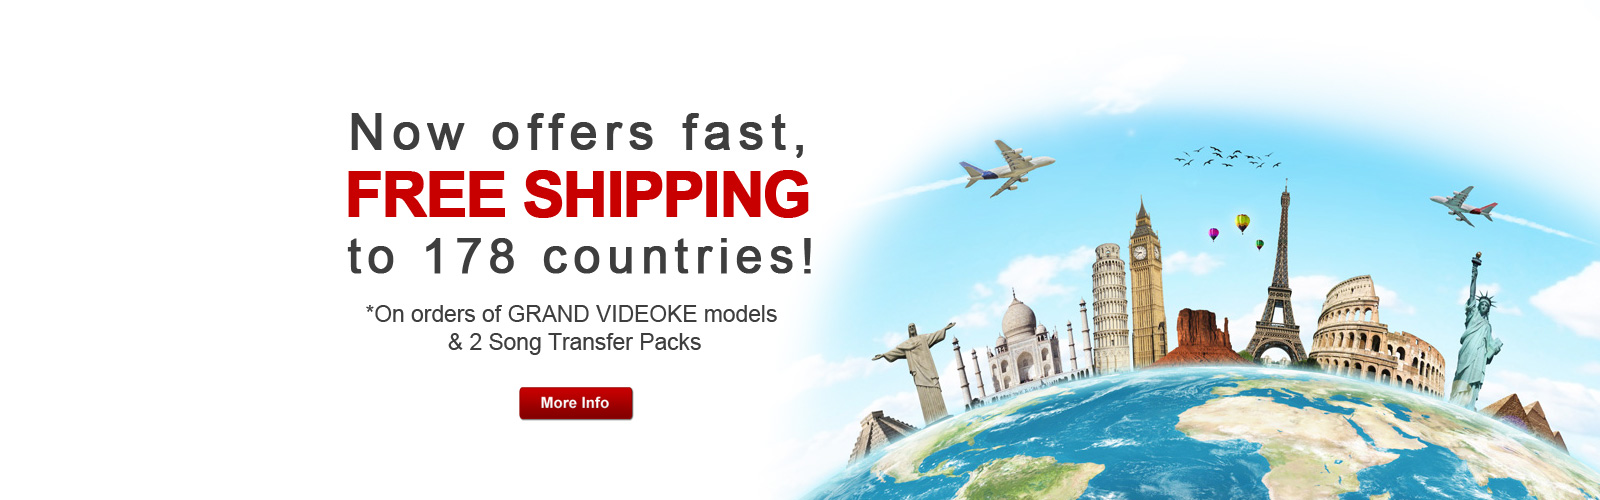 Now offers fast, Free Shipping to 178 countries! *On orders of GRAND VIDEOKE models & 2 Song Transfer Packs